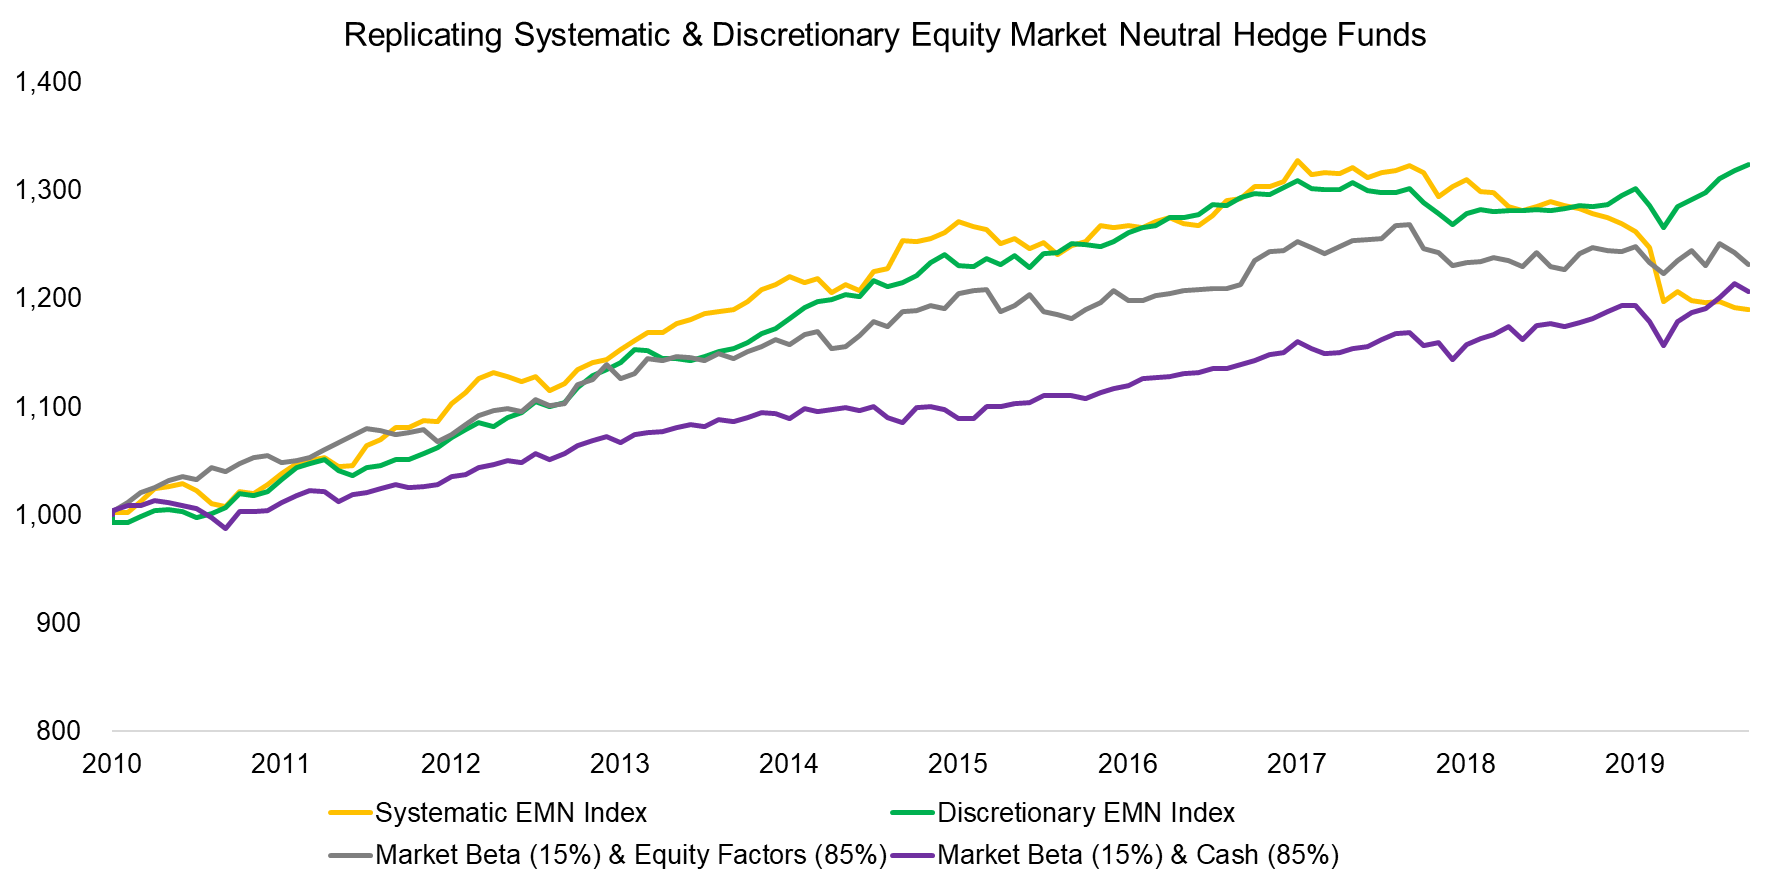 Replicating Systematic & Discretionary Equity Market Neutral Hedge Funds